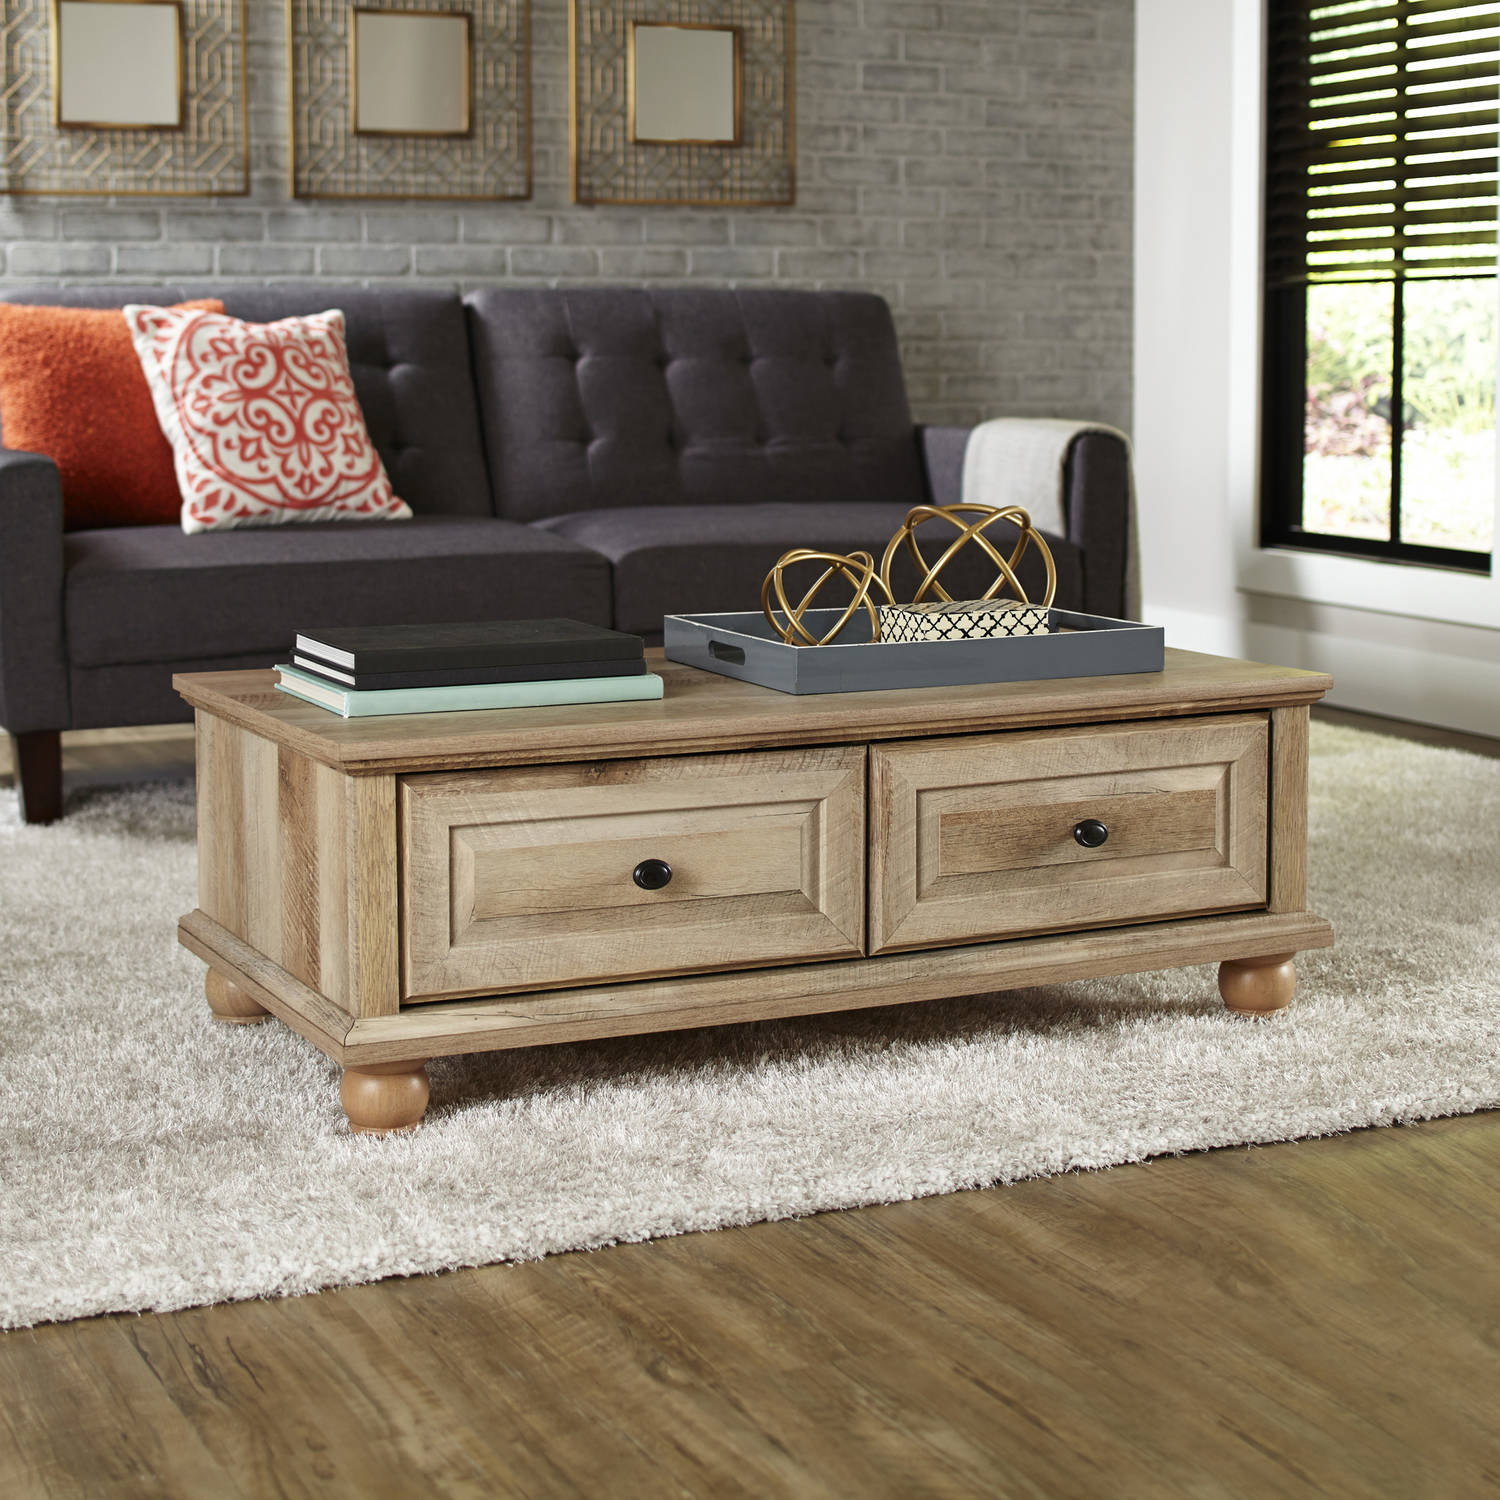 Walmart Coffee Tables: Petite Coffee Table With Foldable Bin Drawer, Multiple